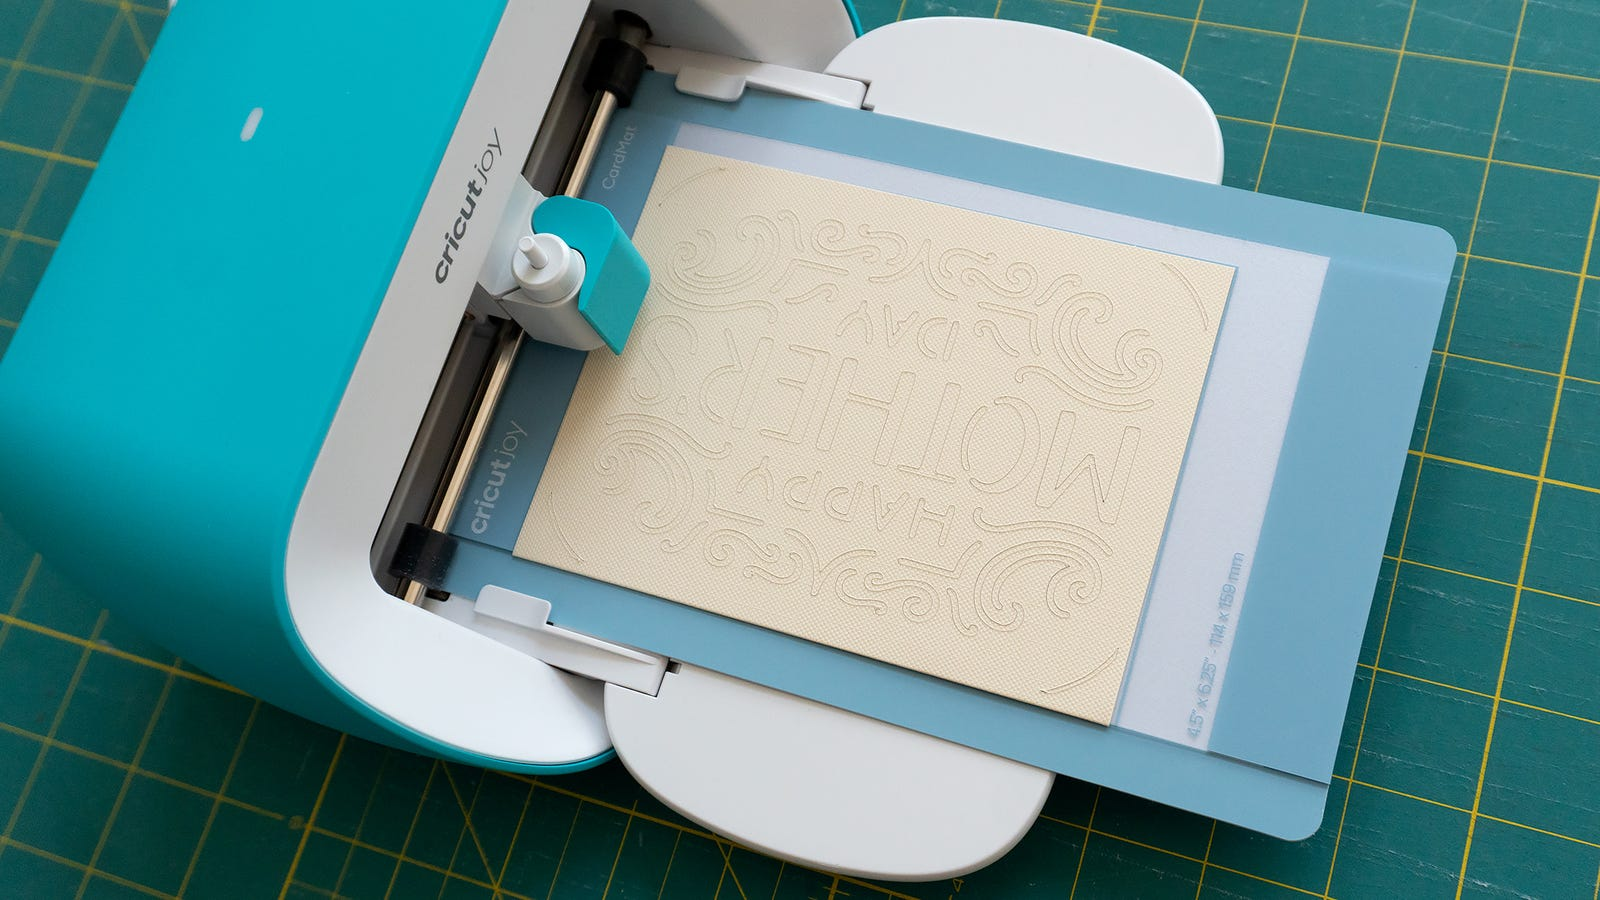 In lieu of a print head the Cricut Joy has a small moving mount that can hold either blades for cutting, or markers for drawing text and shapes.